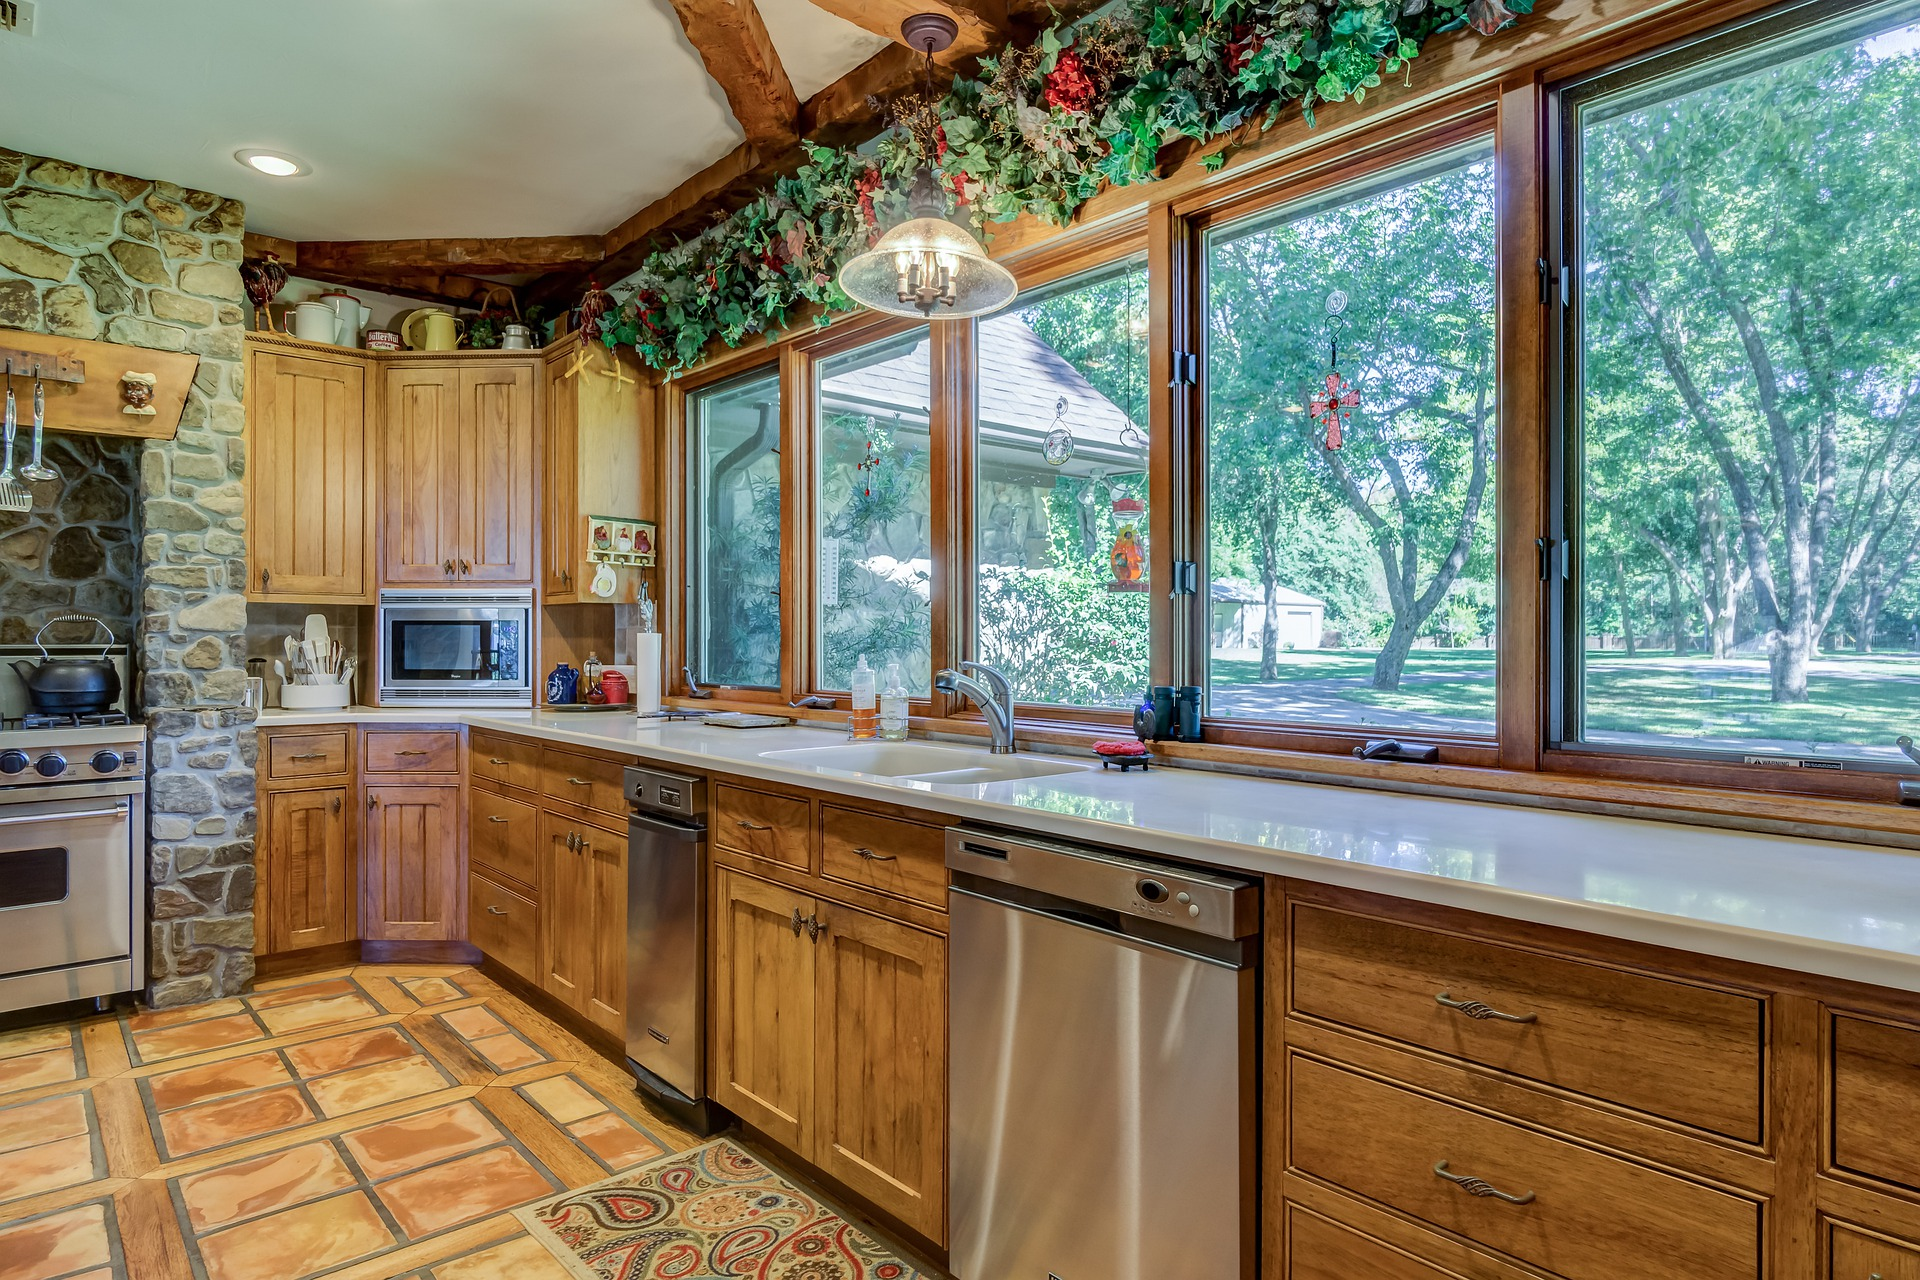 Part 2 of the Ultimate Guide to Kitchen Renovation: Sprucing Up the Windows